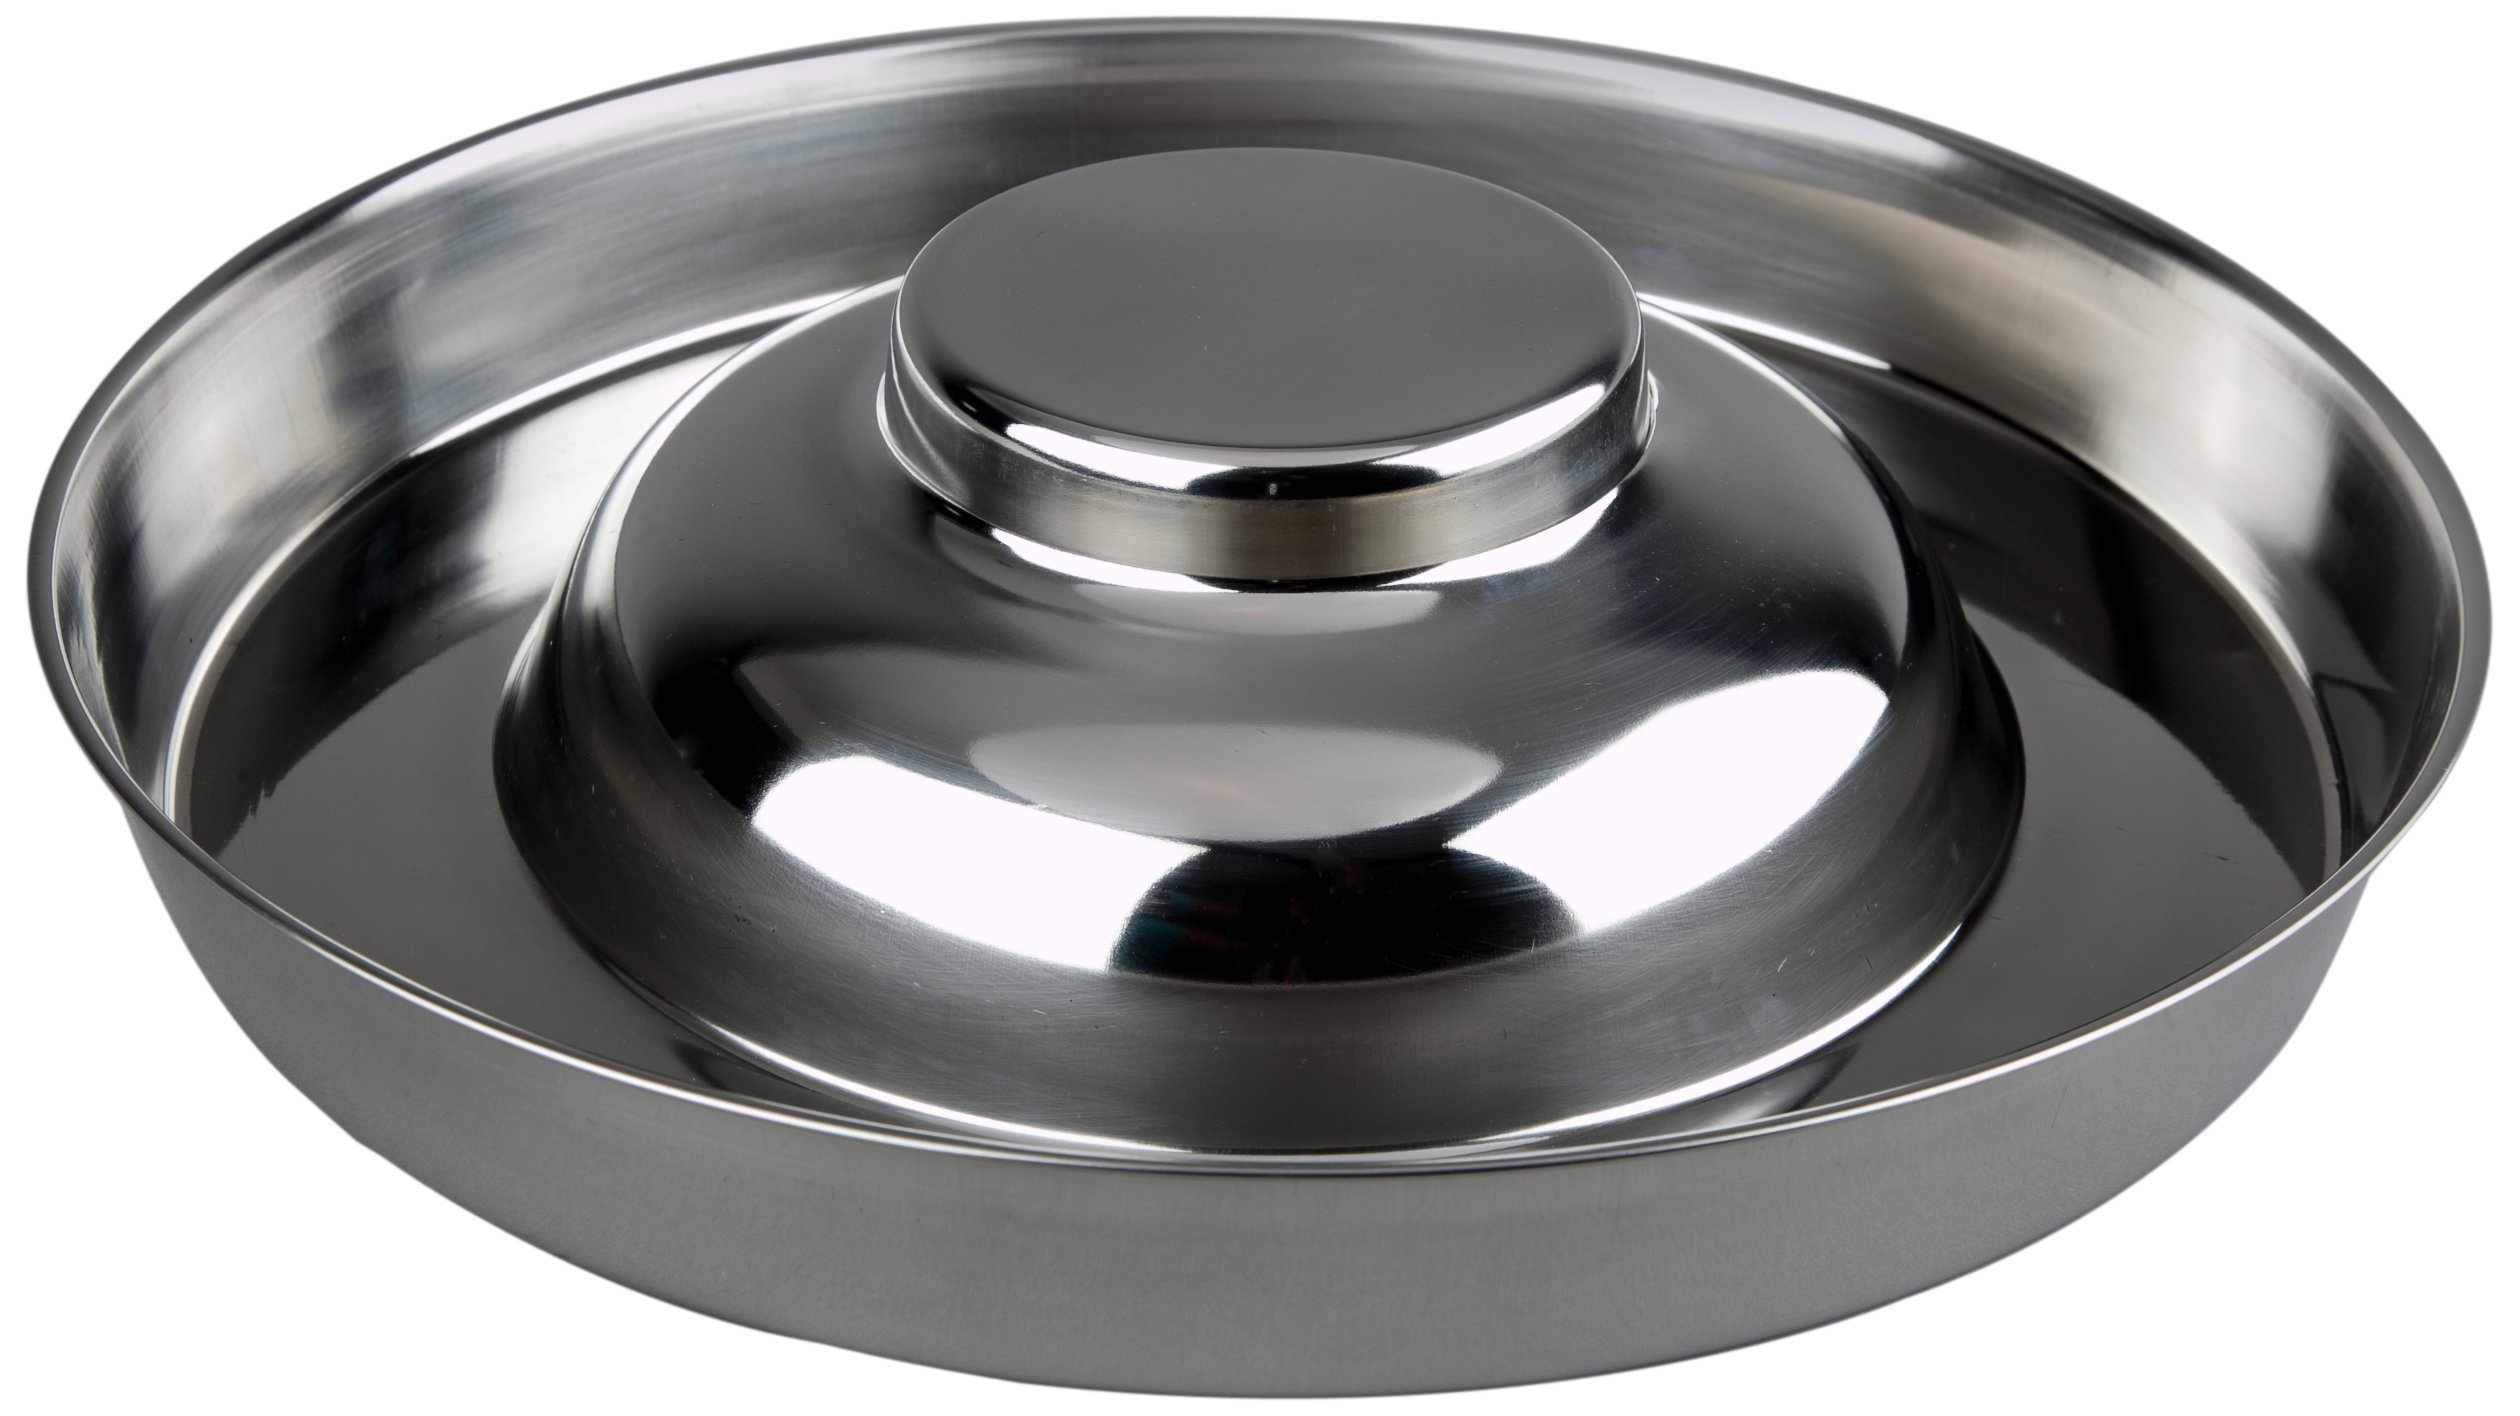 Advance Pet Products Stainless Steel Flying Saucer, 15-Inch